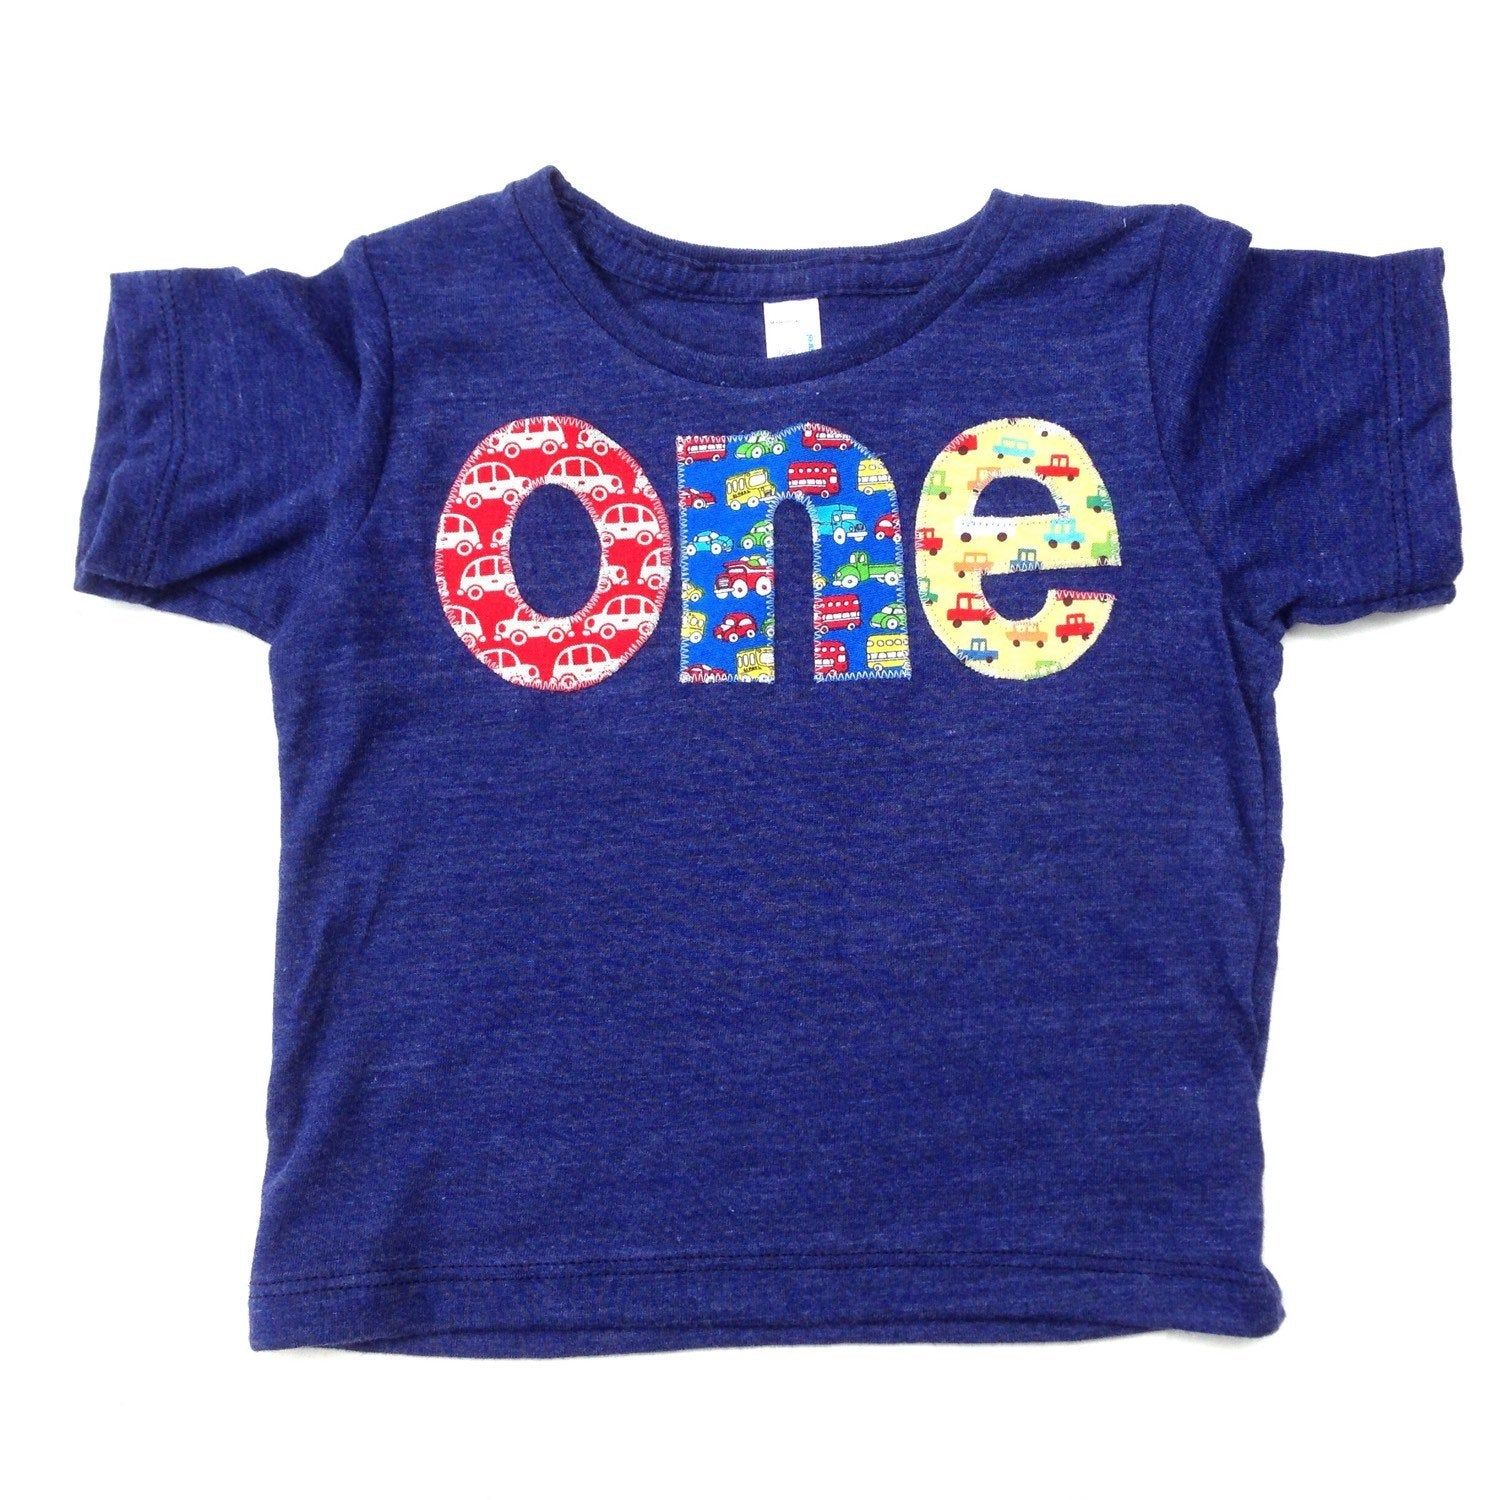 cars birthday shirt, boys 1st birthay, boys car shirt, car first birthay, racecar shirt, race car shirt, one shirt, blue car, red car, truck